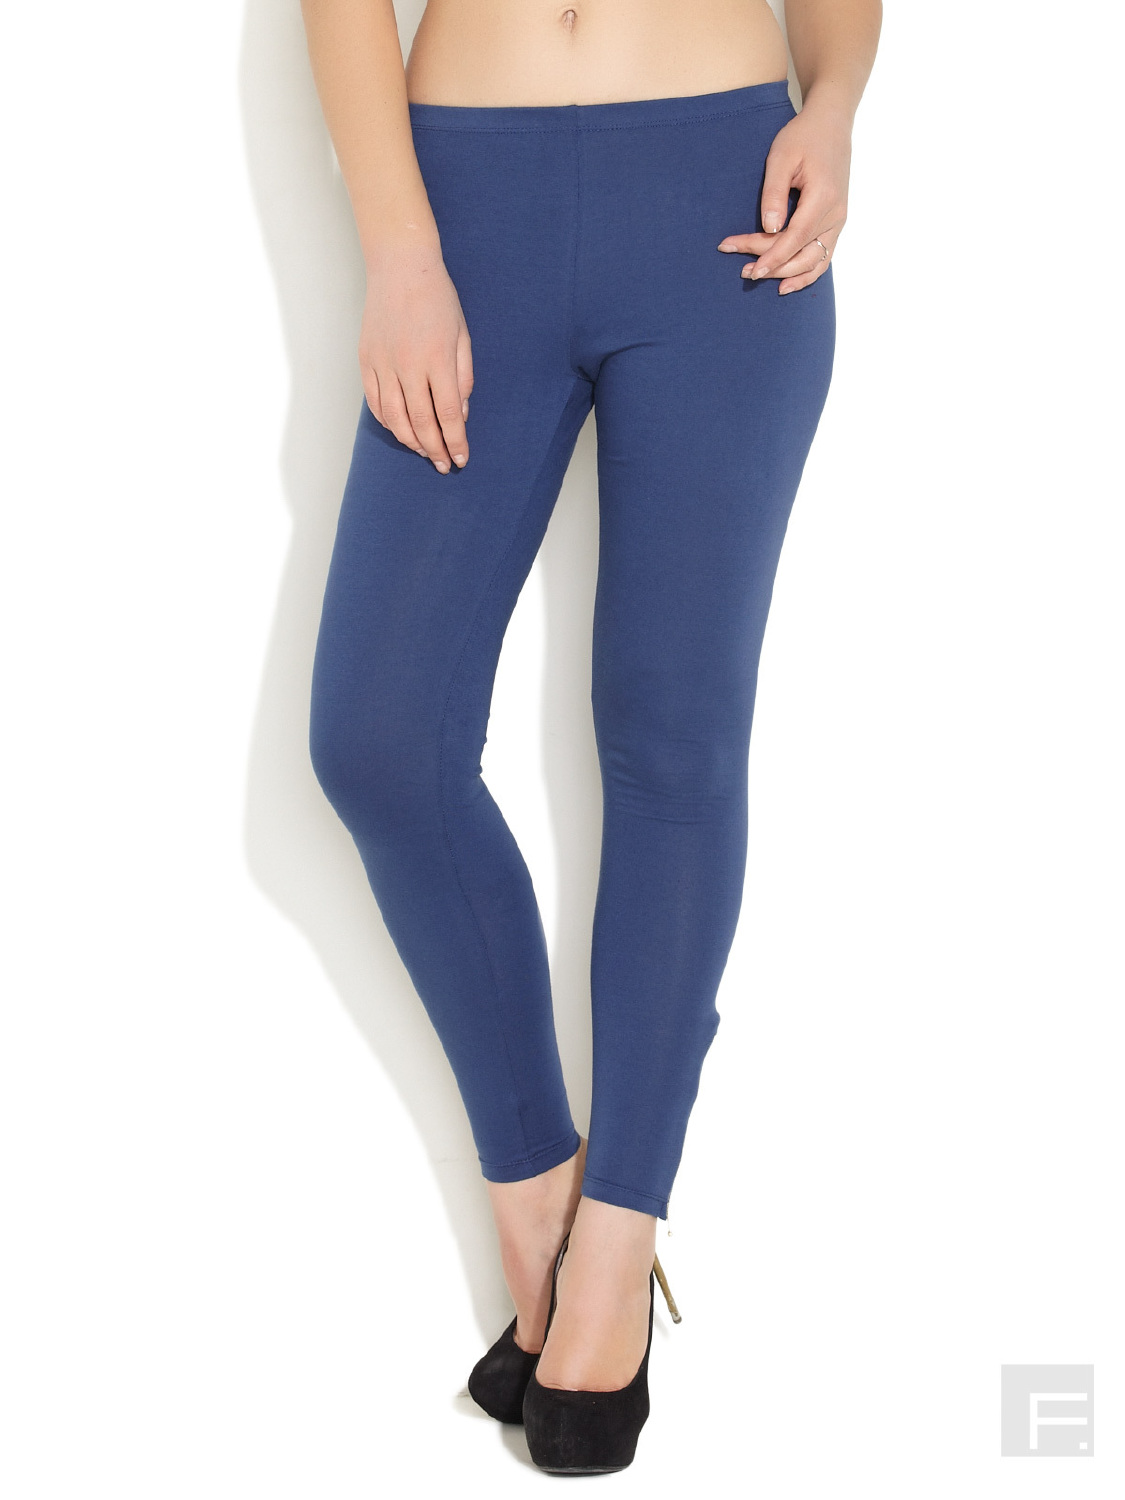 Zipper Leggings Buy Online India 101